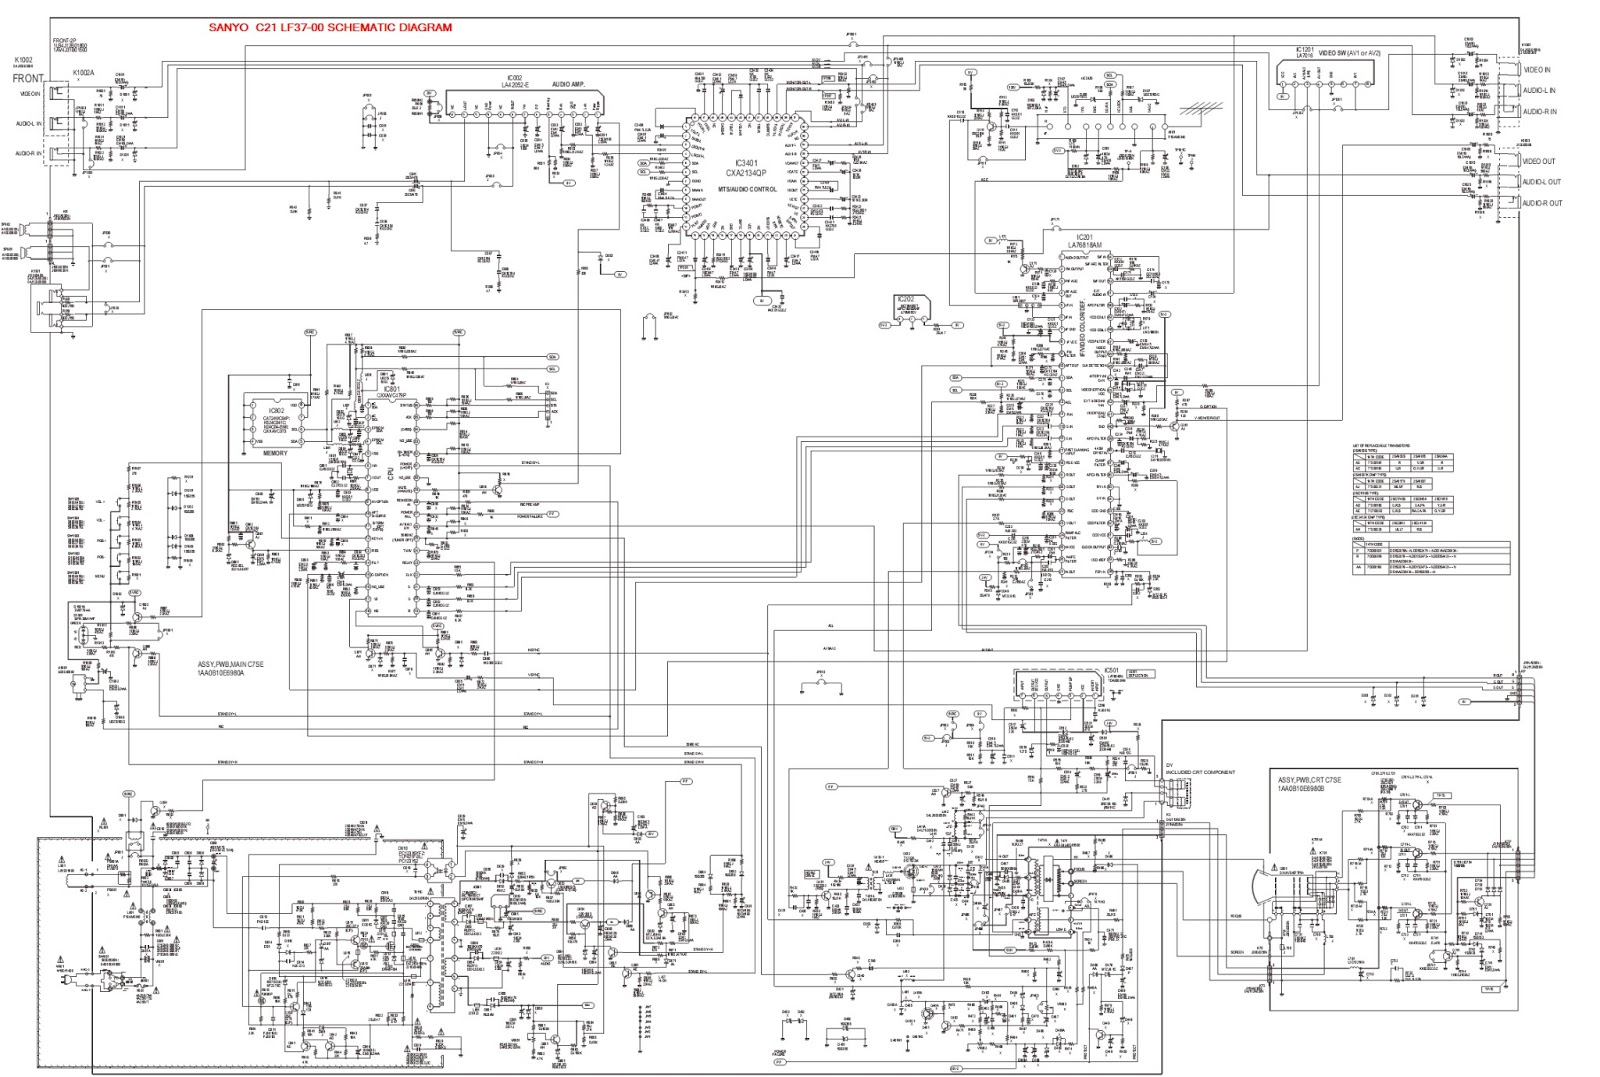 sanyo tv diagram wiring diagrams tar sanyo tv kit diagram sanyo tv diagram [ 1600 x 1077 Pixel ]